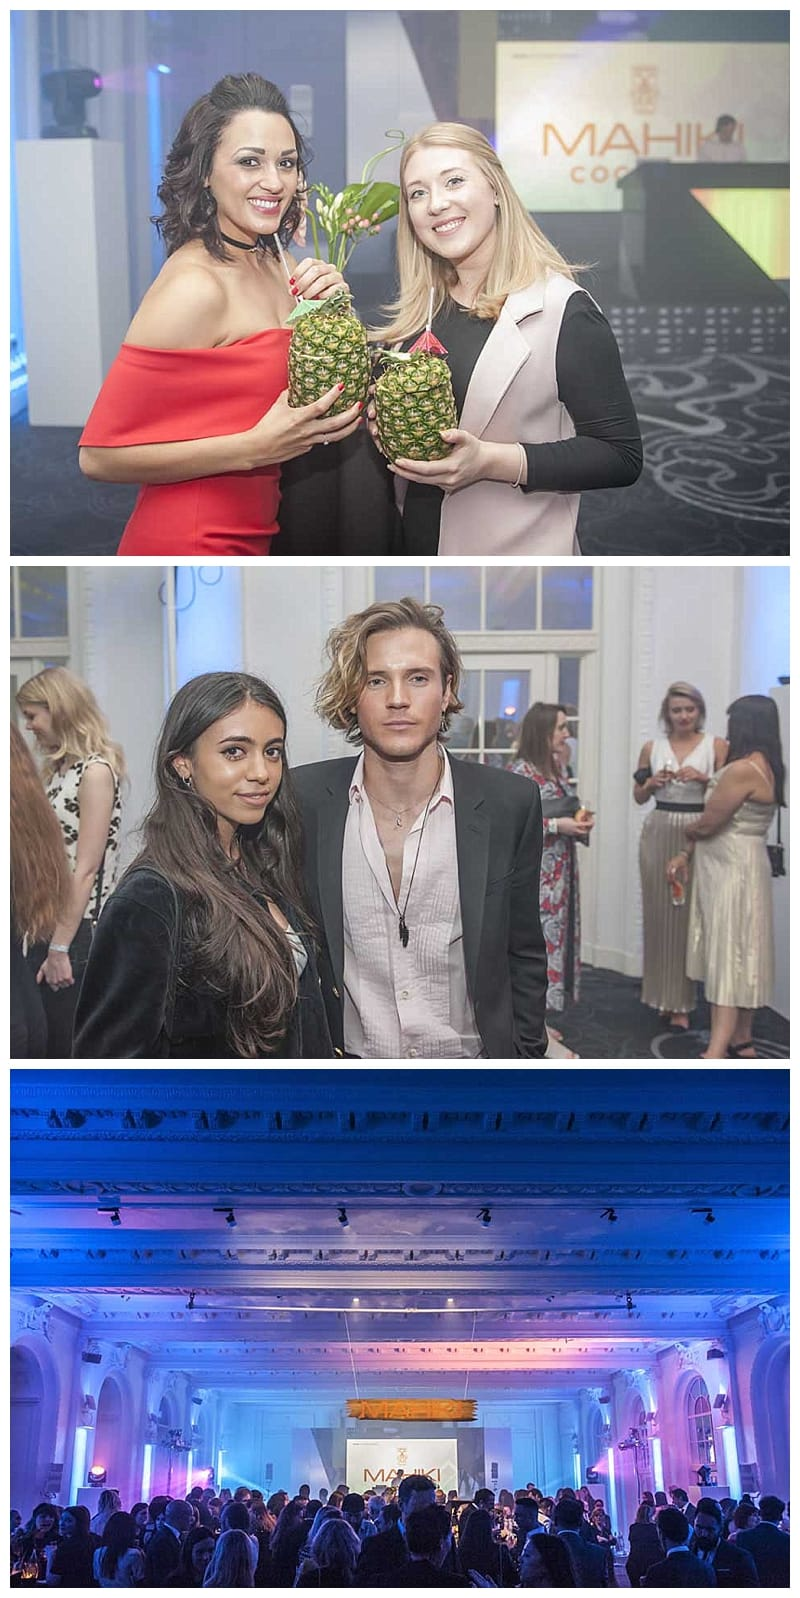 wgsn-conference-benjamin-wetherall-photography-0032